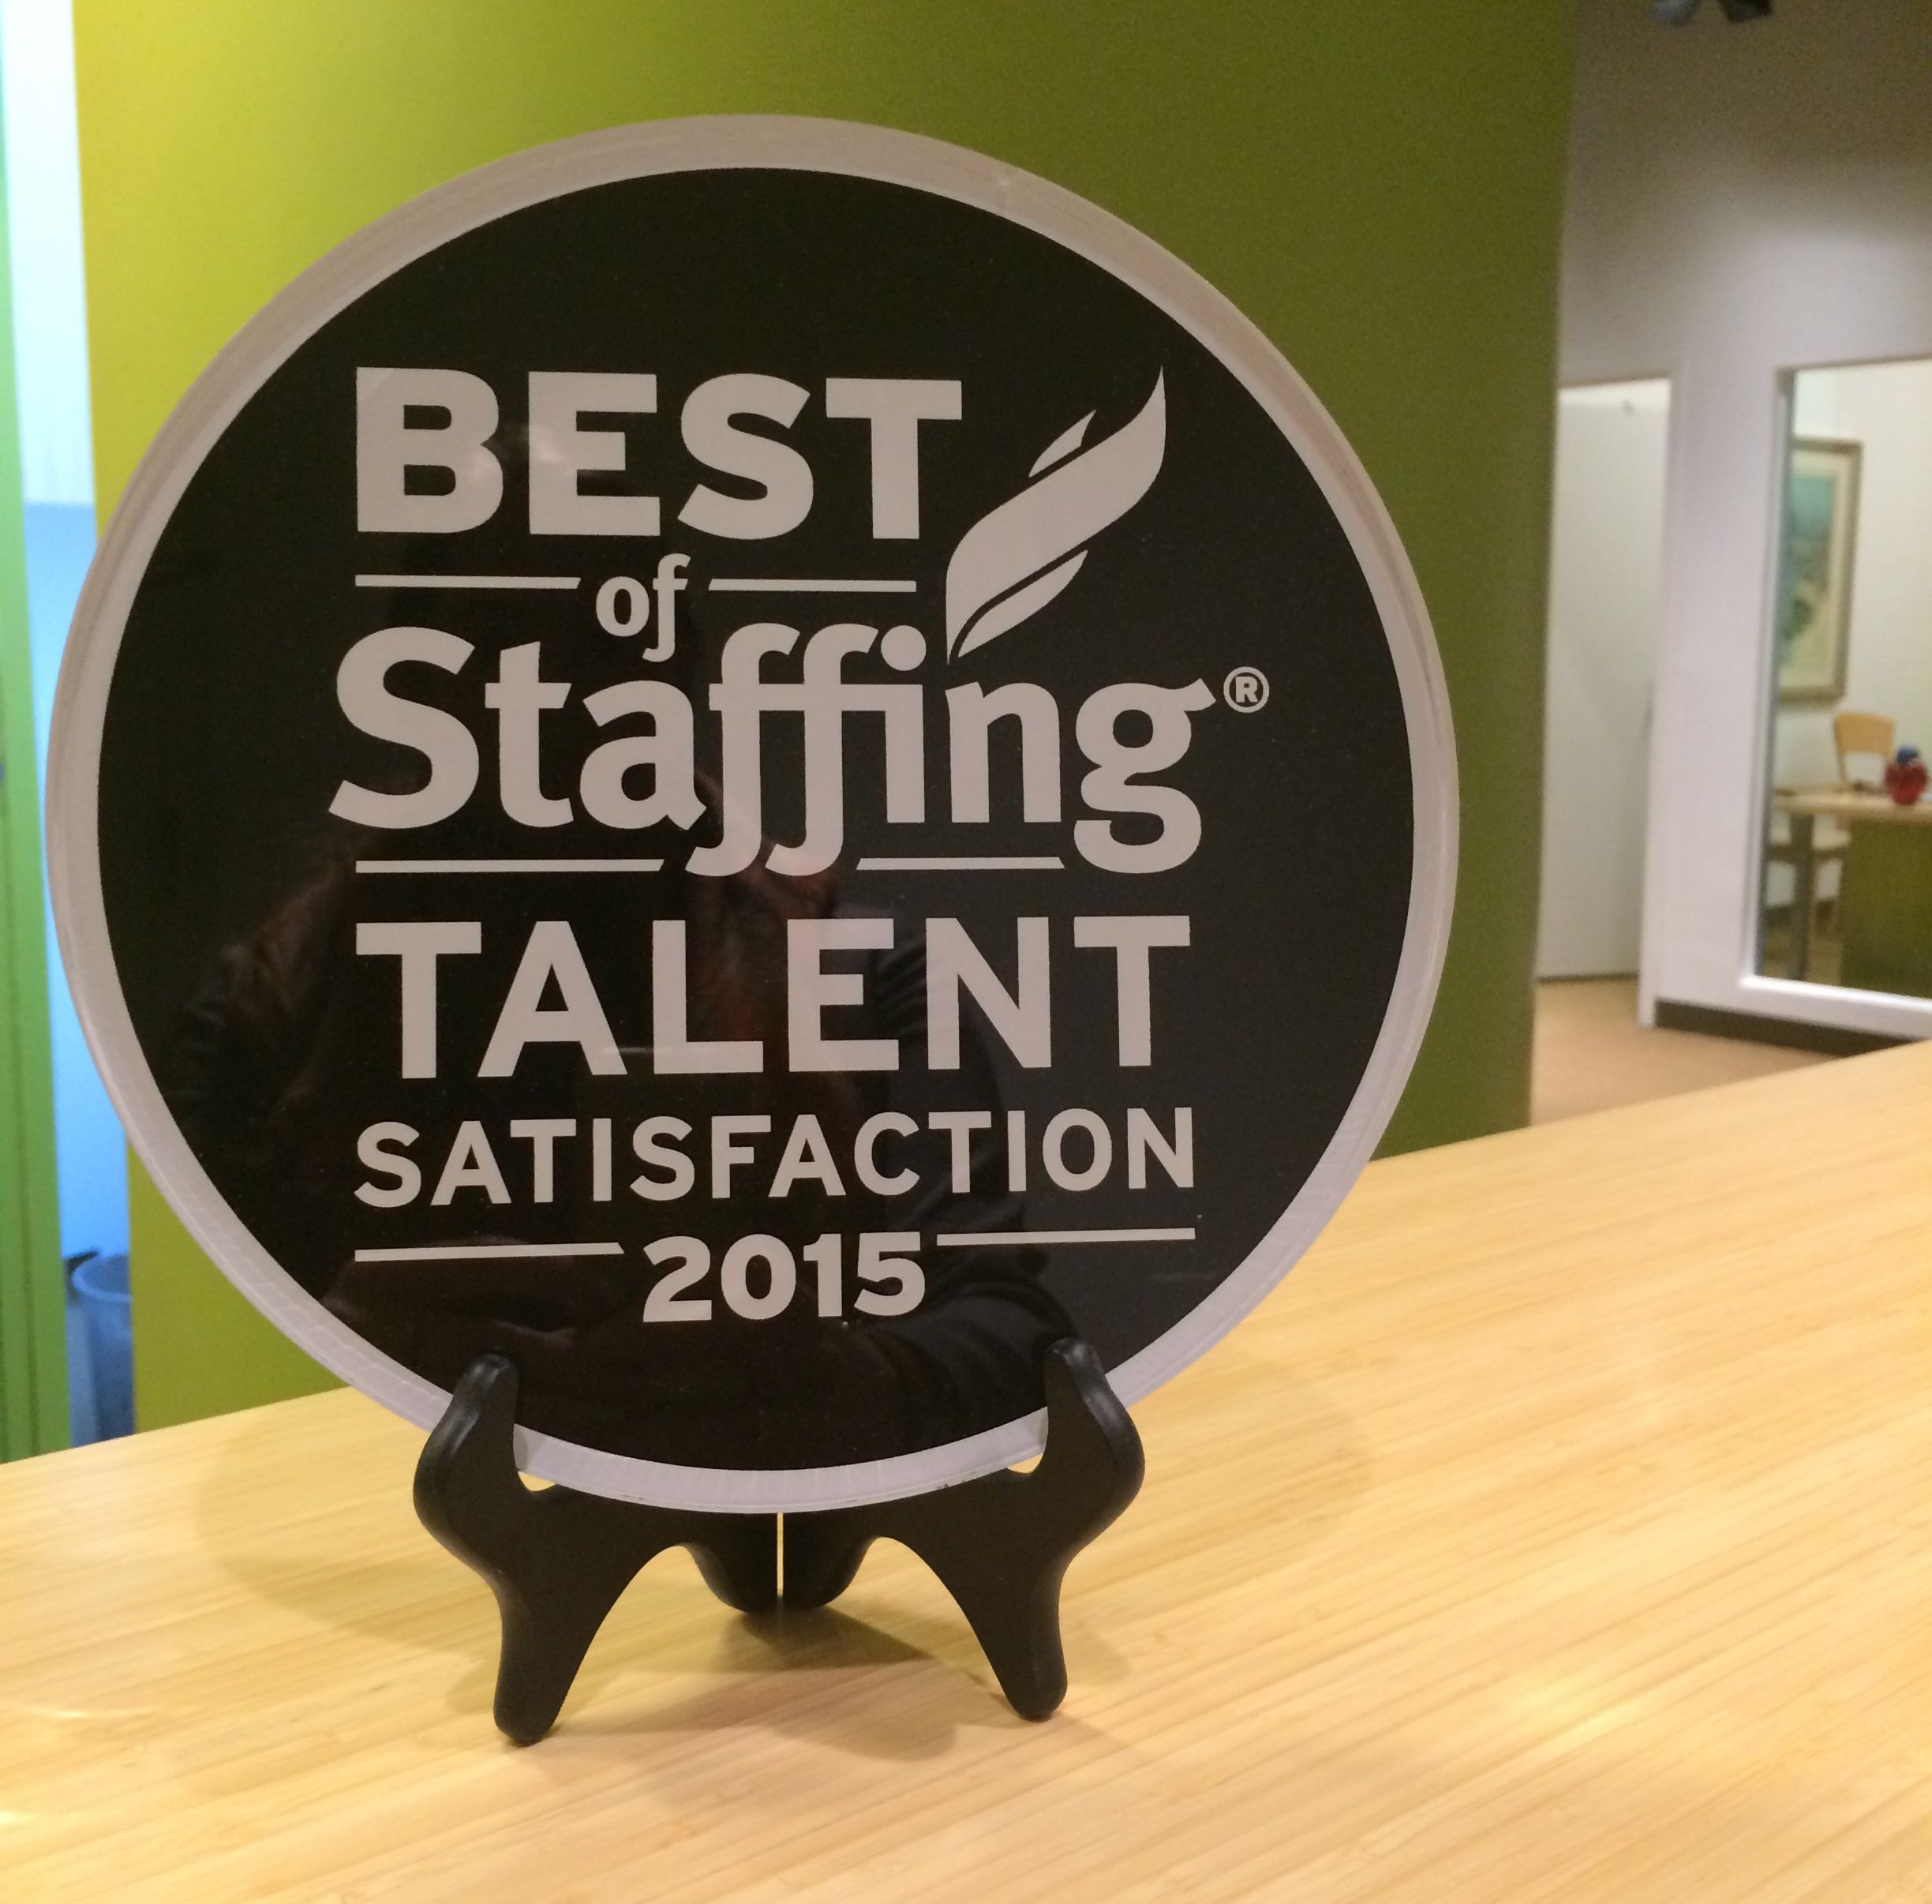 It's a major award! Staffing agency, Executive education